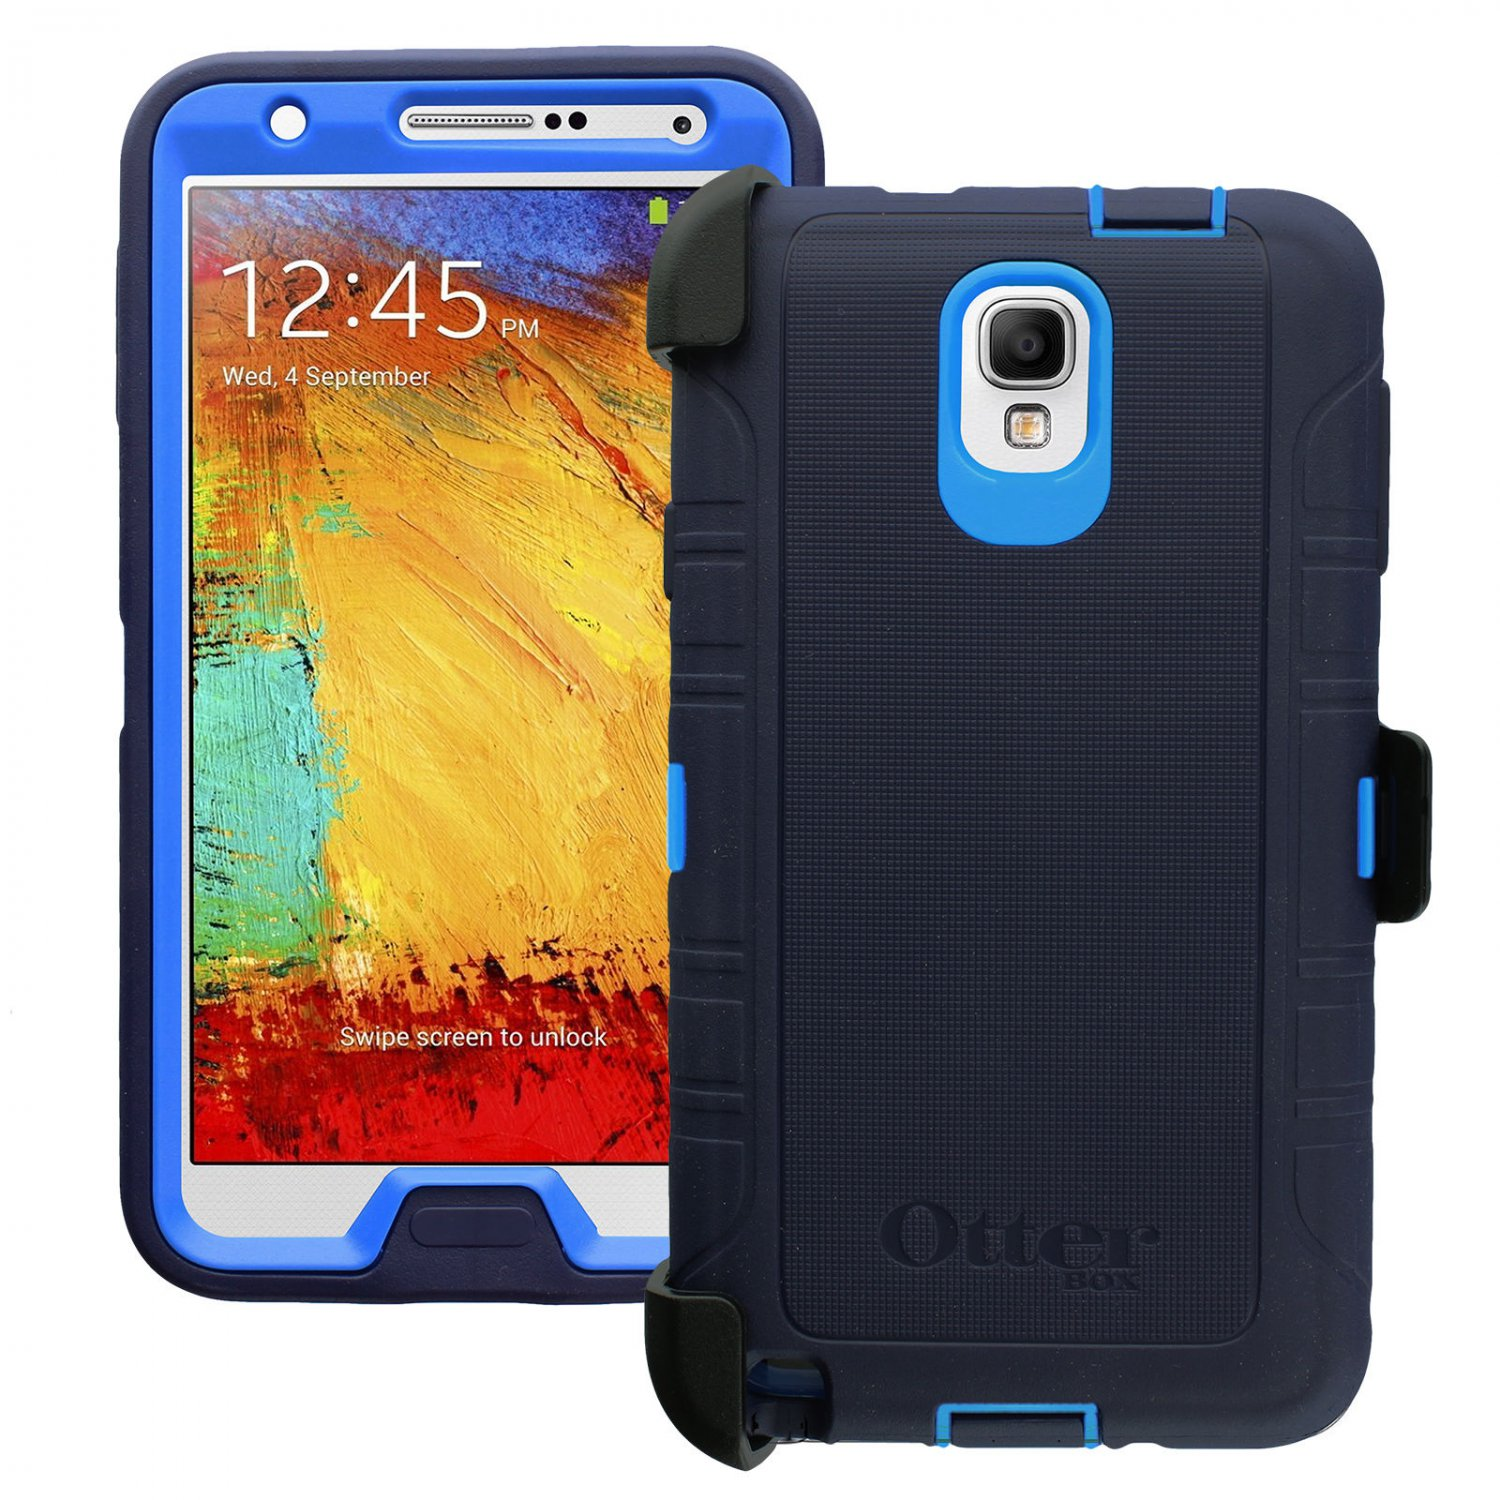 newest 9e1d6 941b4 New Otterbox Defender Case with Belt Clip Holster for Galaxy Note 3 ...